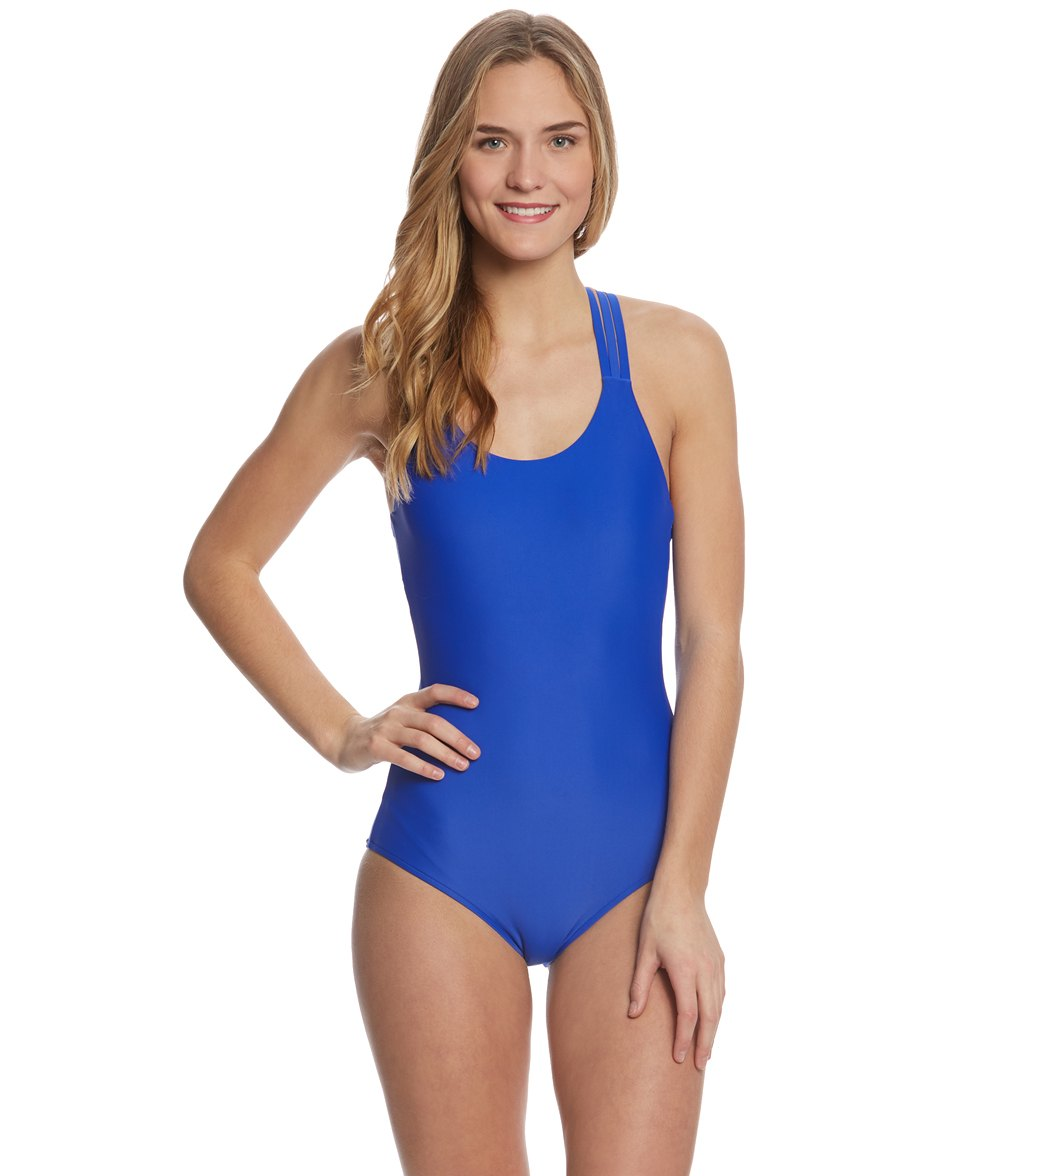 5f7e53c3ee Body Glove Smoothies Crossroads One Piece Swimsuit at SwimOutlet.com - Free  Shipping